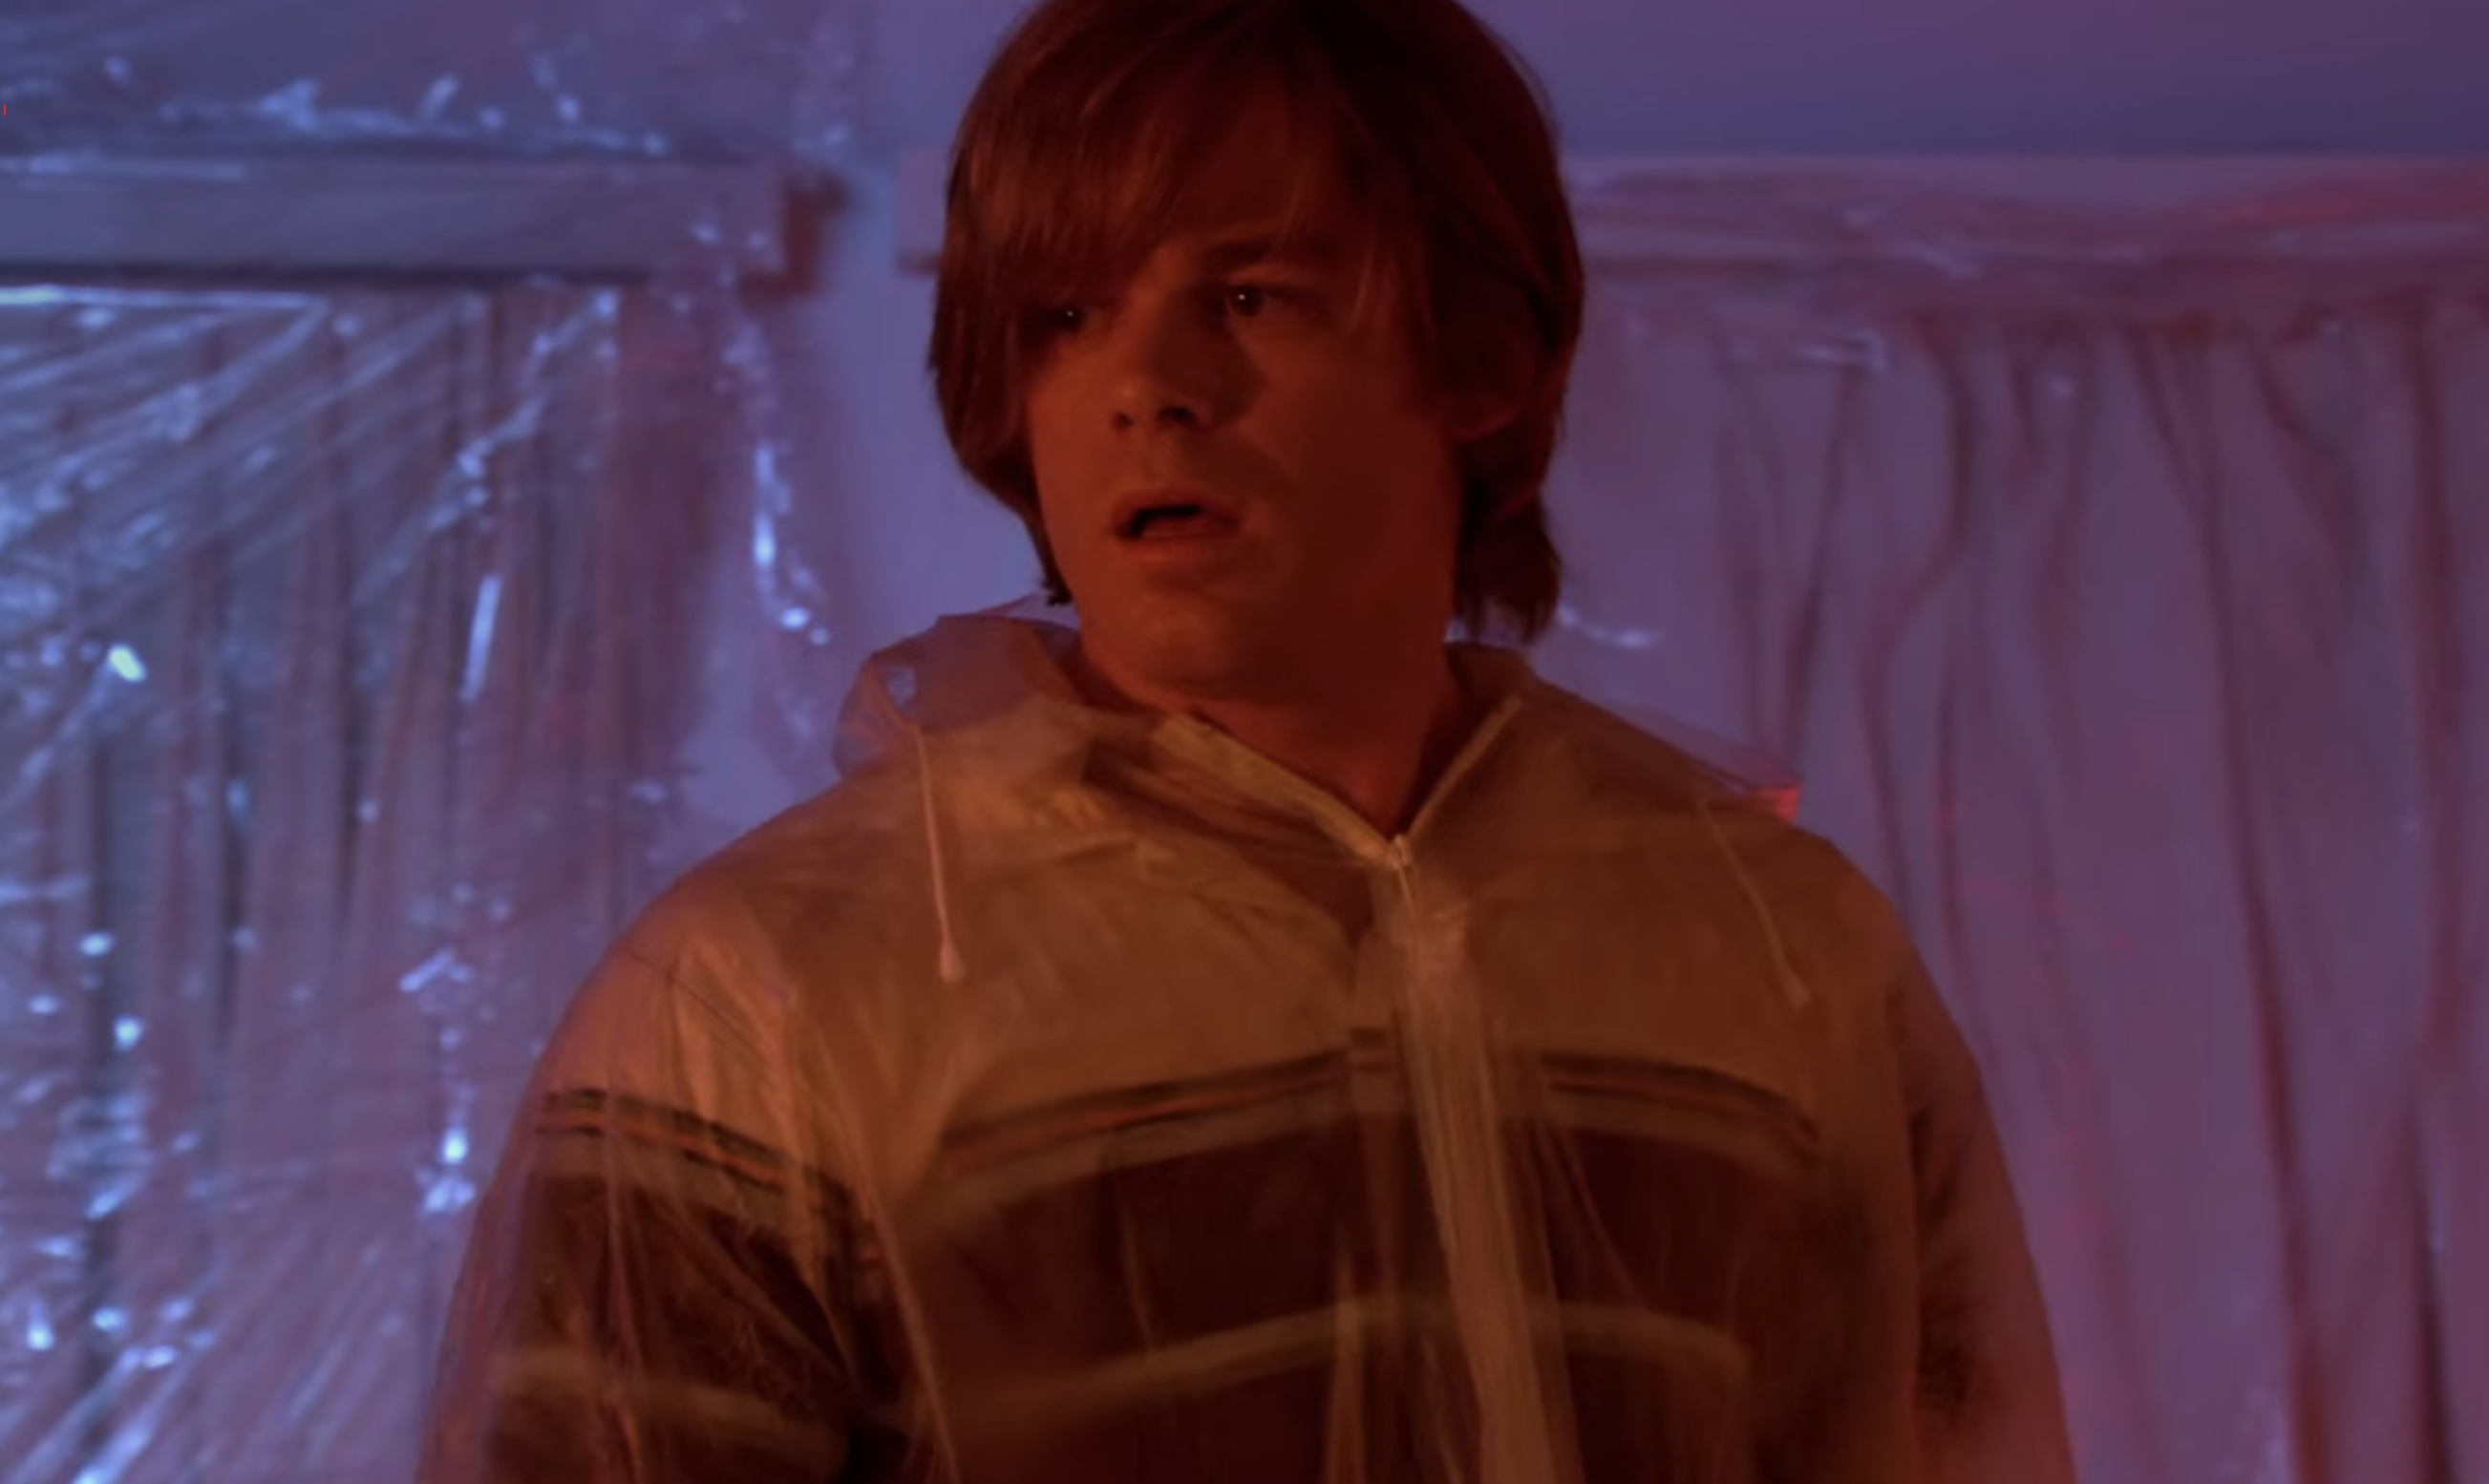 Michael C. Hall wearing a wig with long bangs